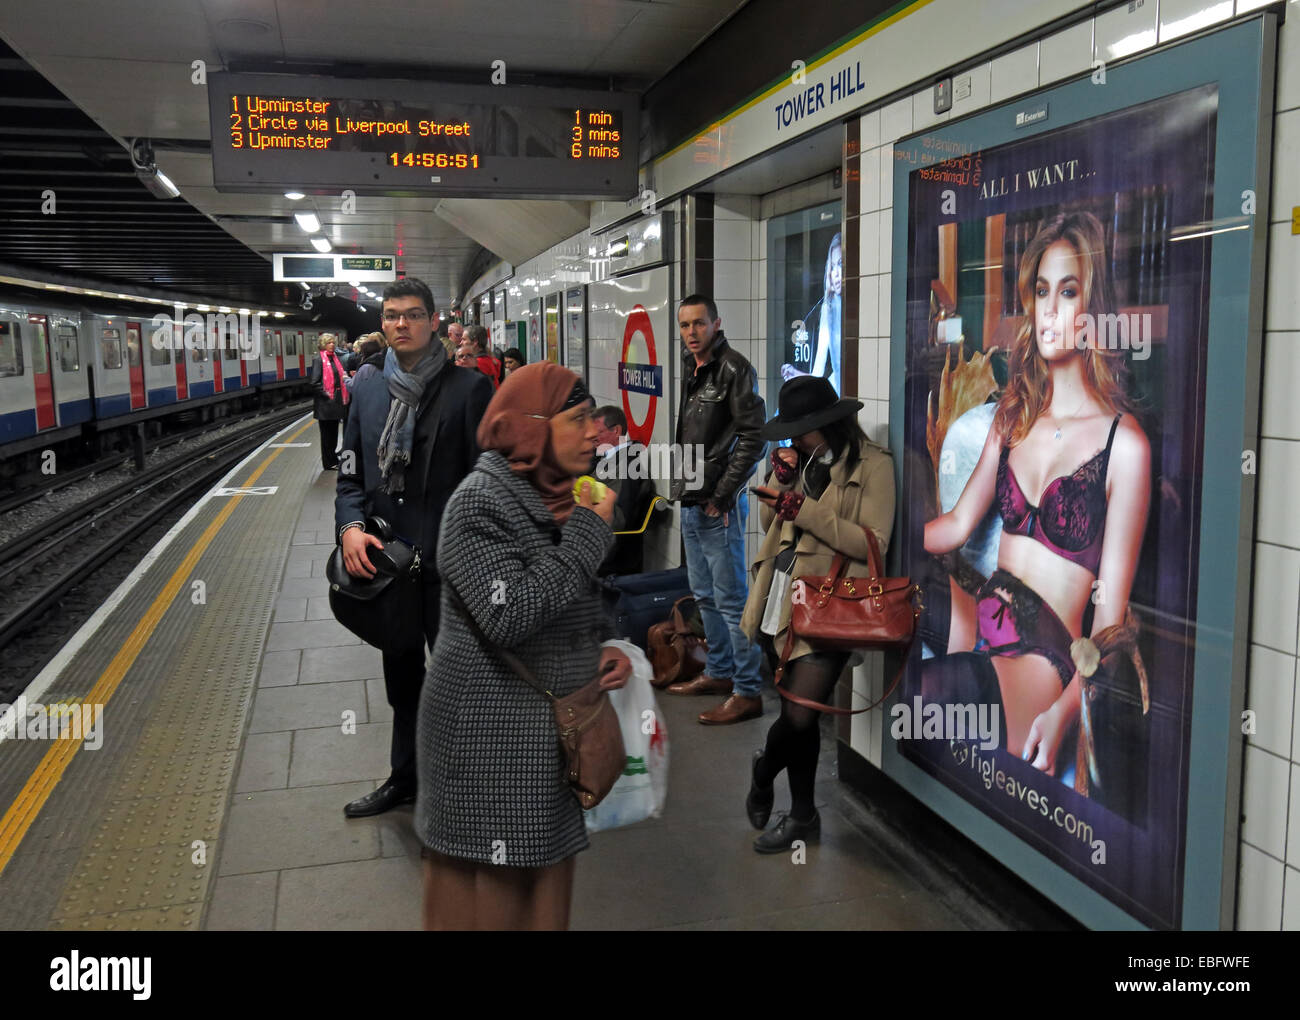 City Underground platform,England,UK,GB,Great,Britain,transport,people,looking,at,a,poster,fun,shot,LU,circle,district,line,flesh,underwear,bra,stockings,suspenders,rude,Muslim,woman,lady,culture,clash,islam,gotonysmith